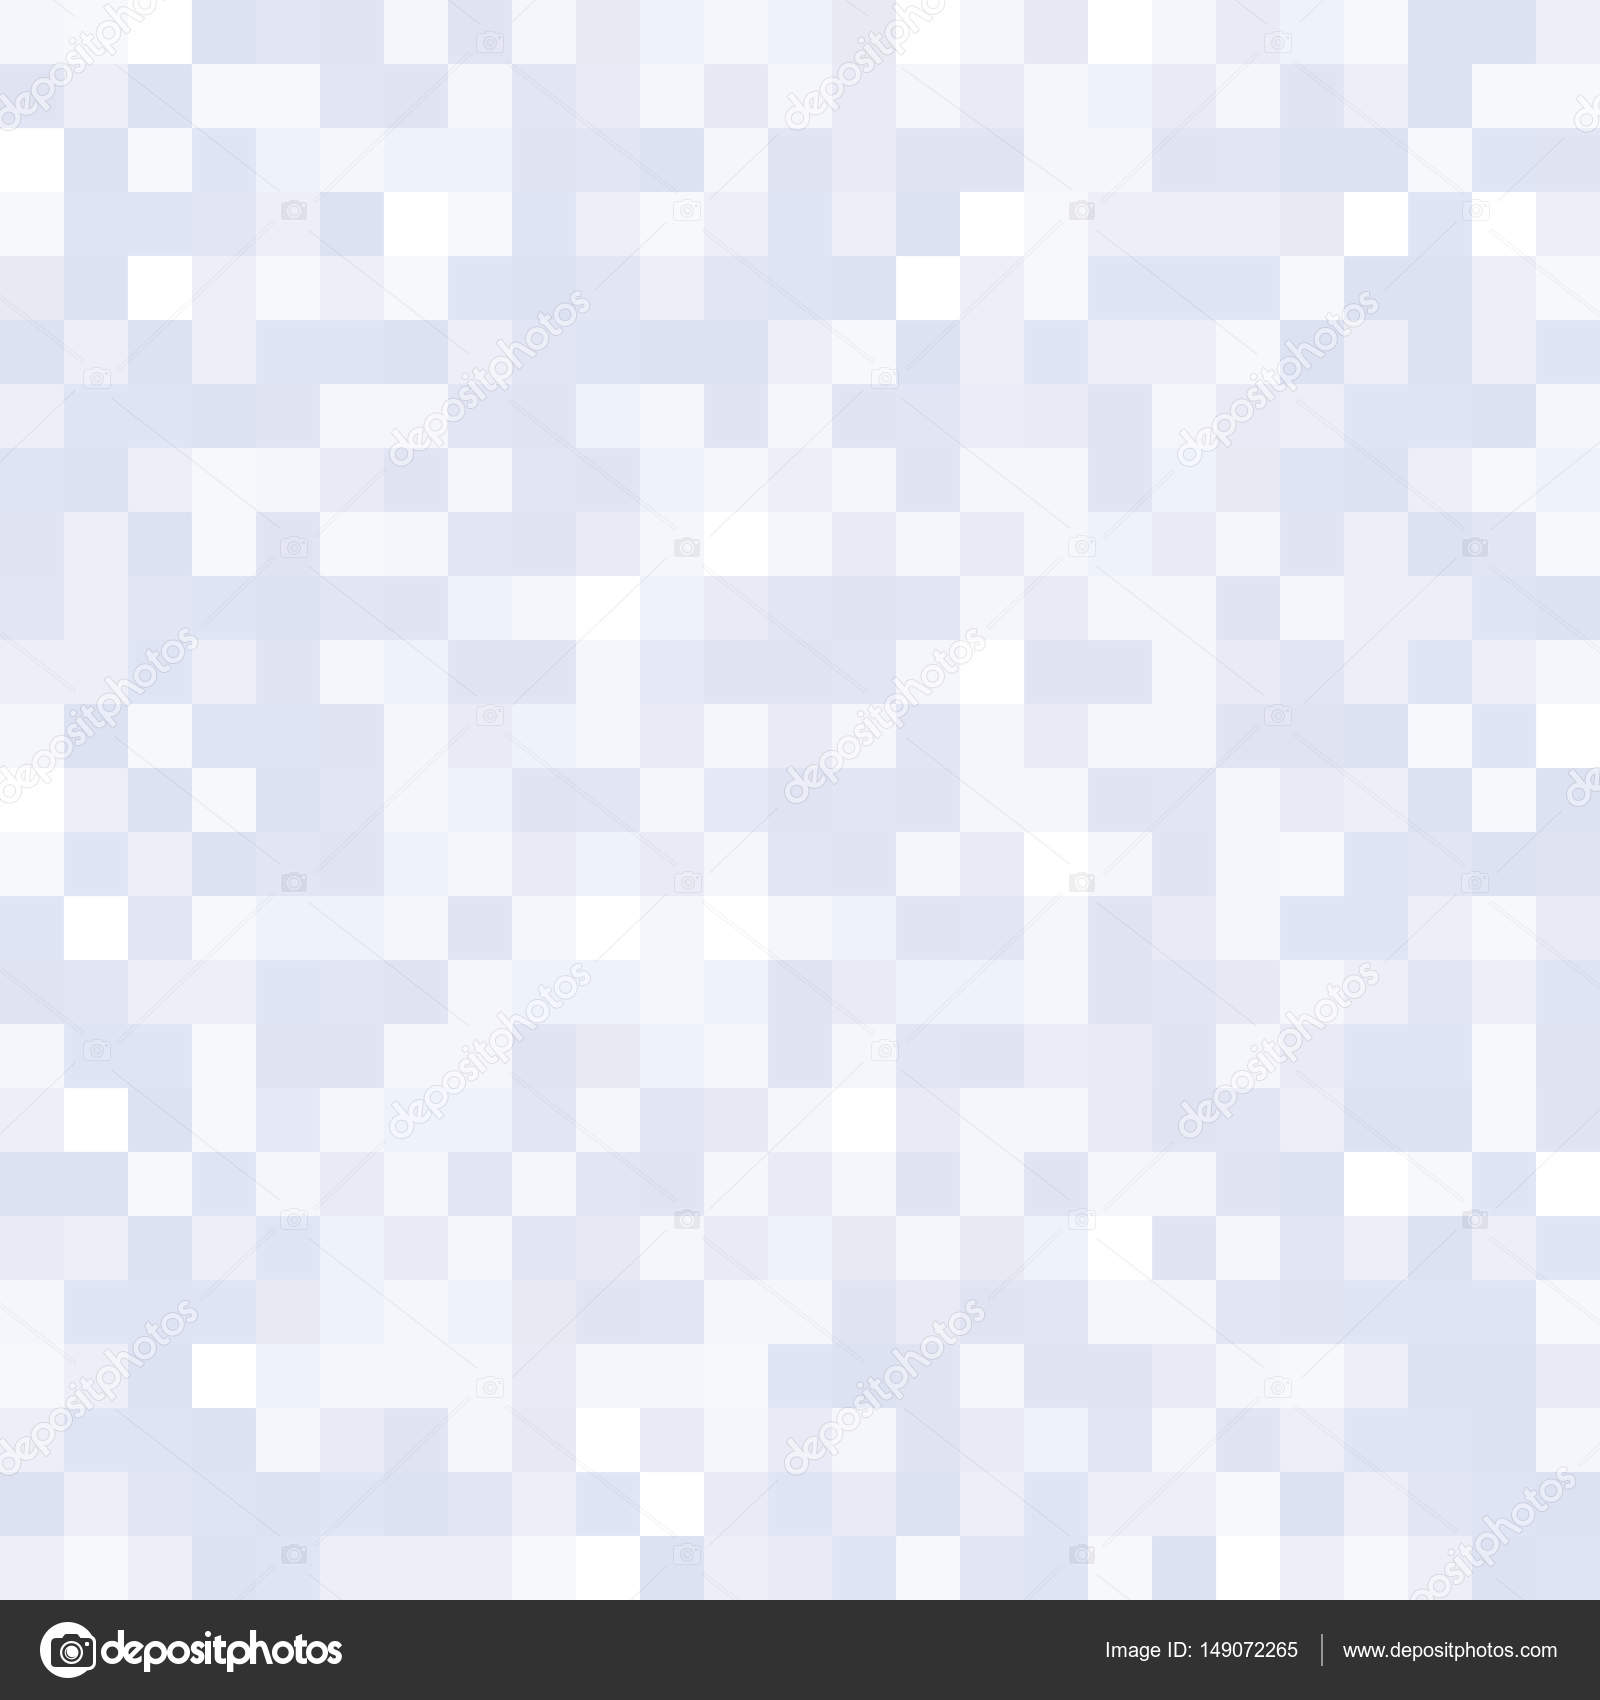 Seamless Pixelated Snow Texture Mapping Background For